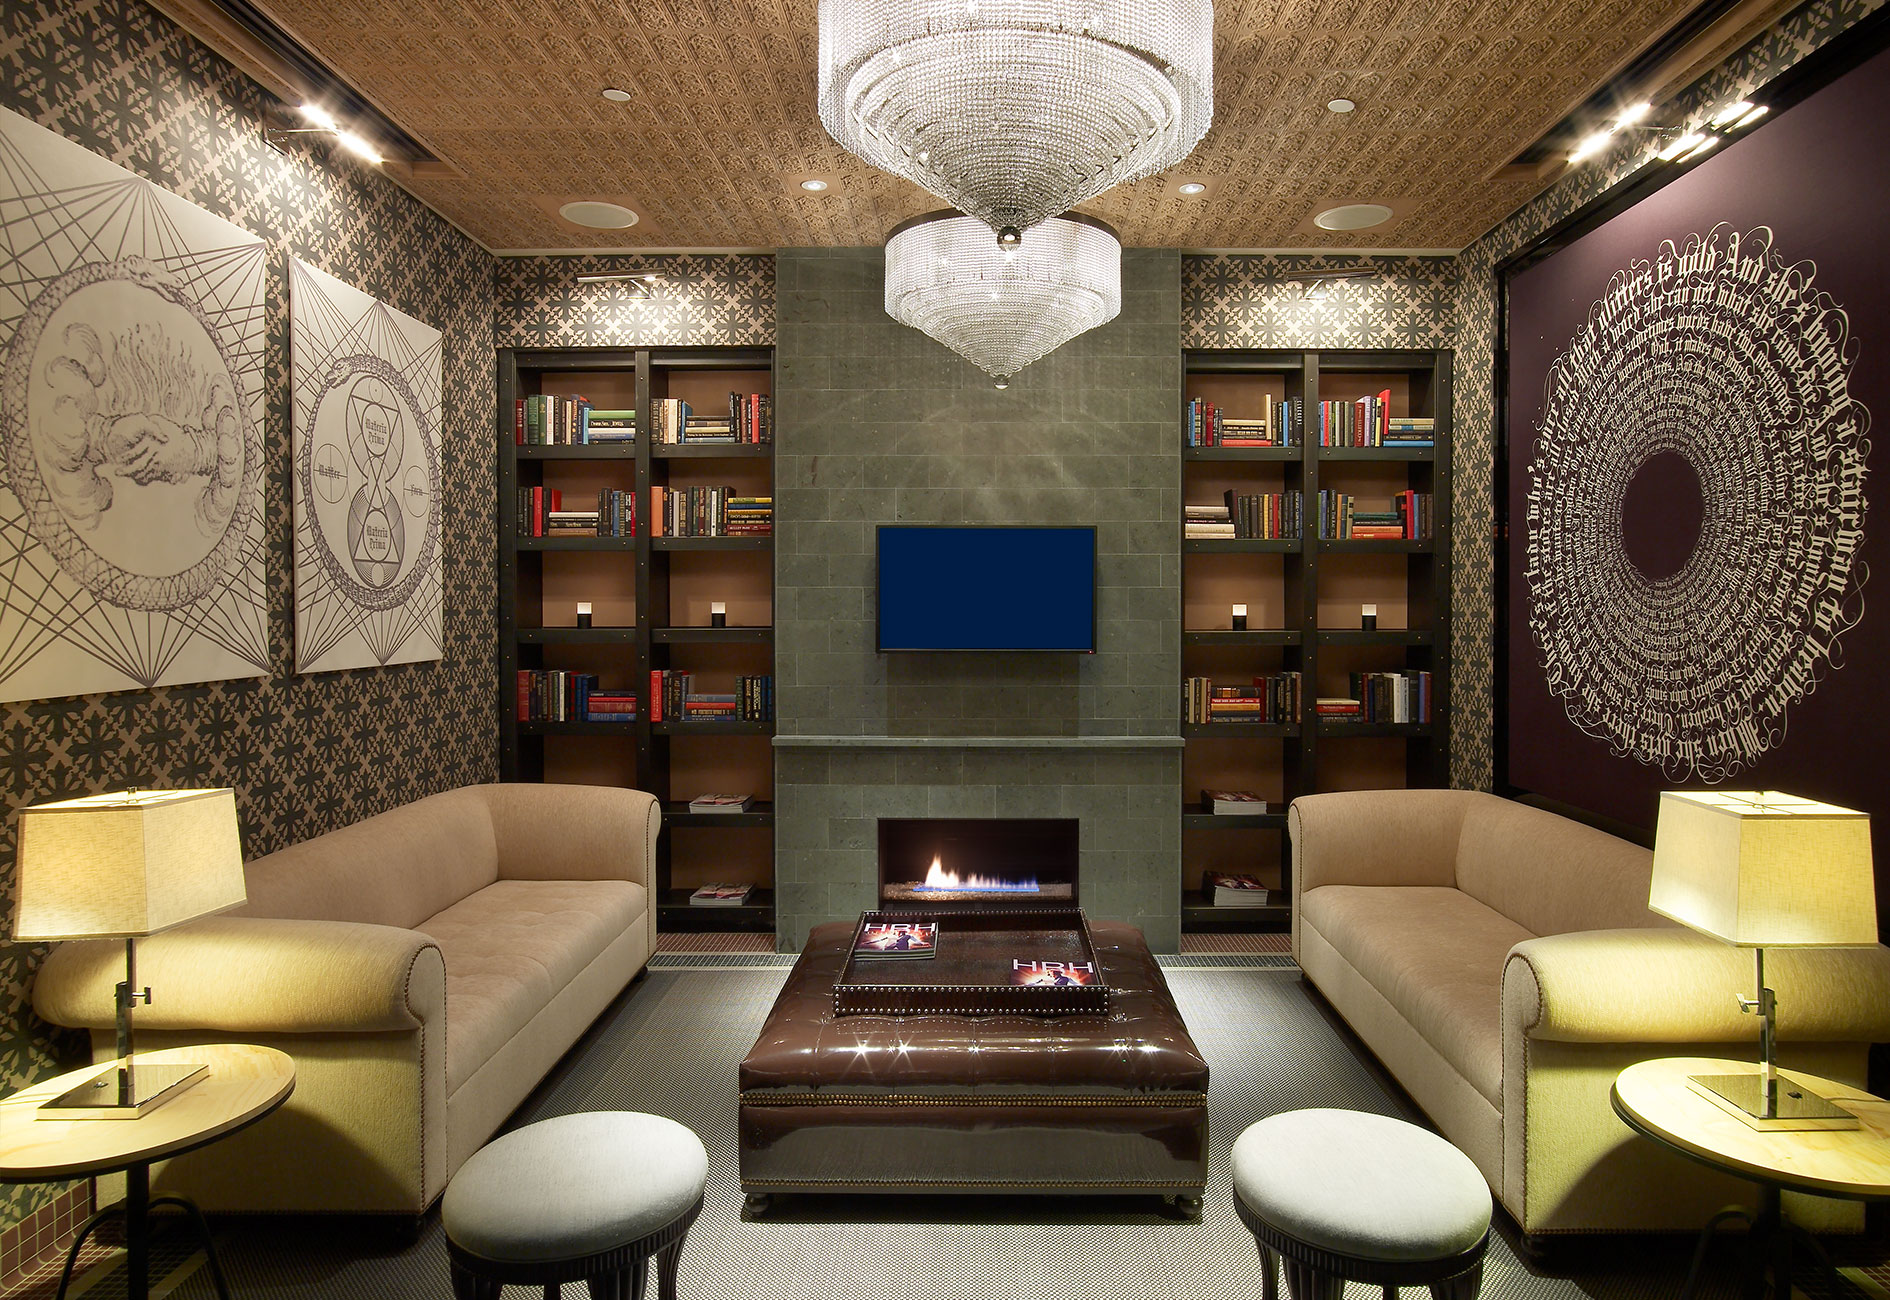 HARD ROCK HOTEL SPA by Mark Zeff Design